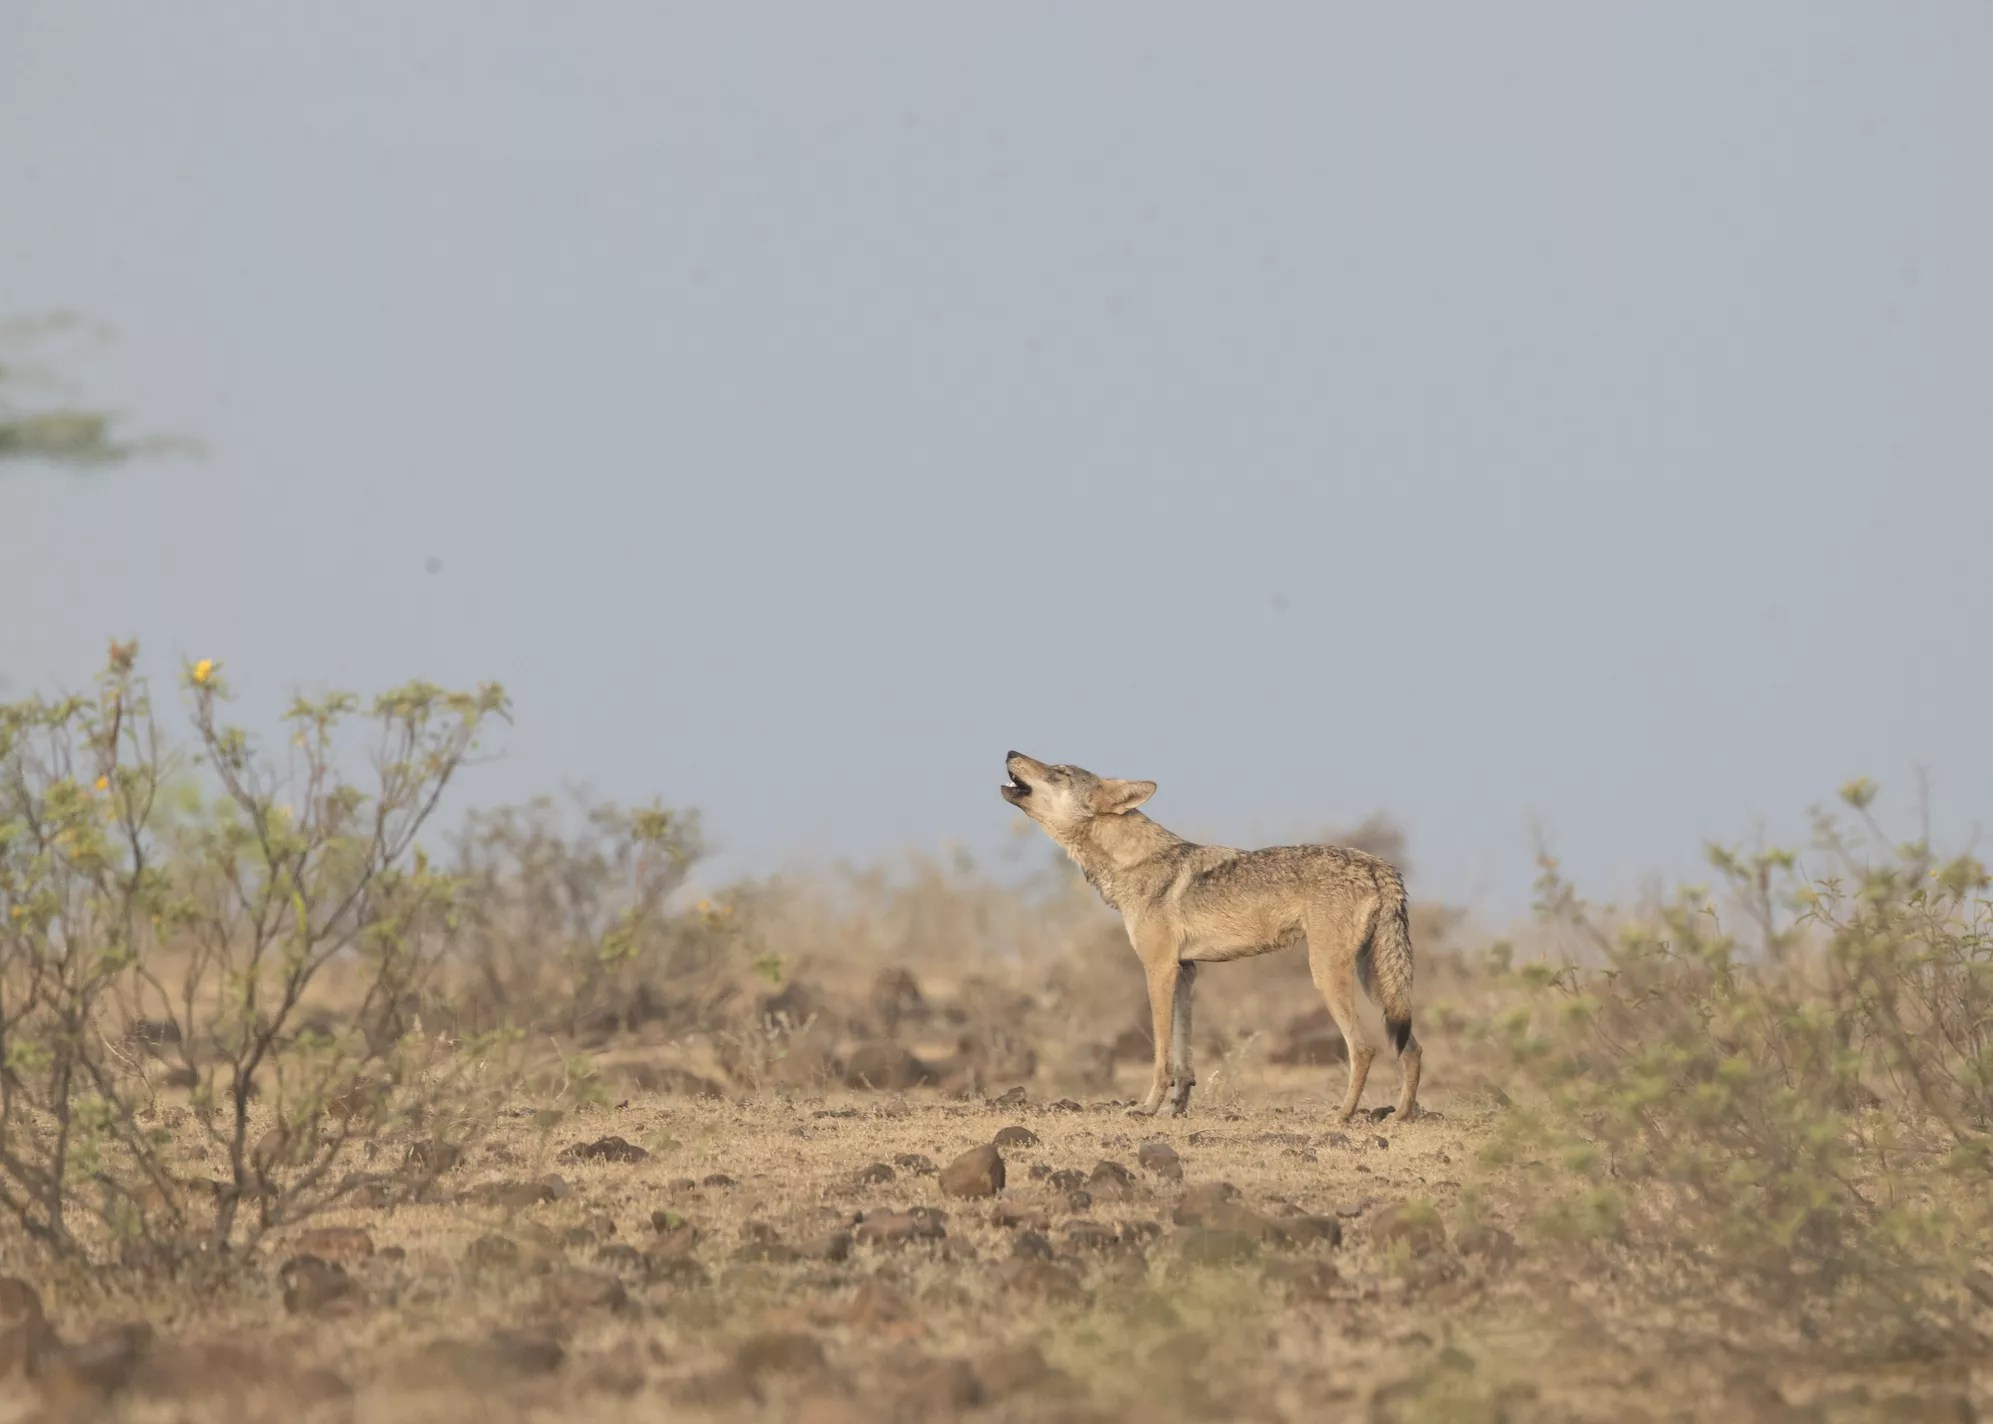 Indian wolf howling